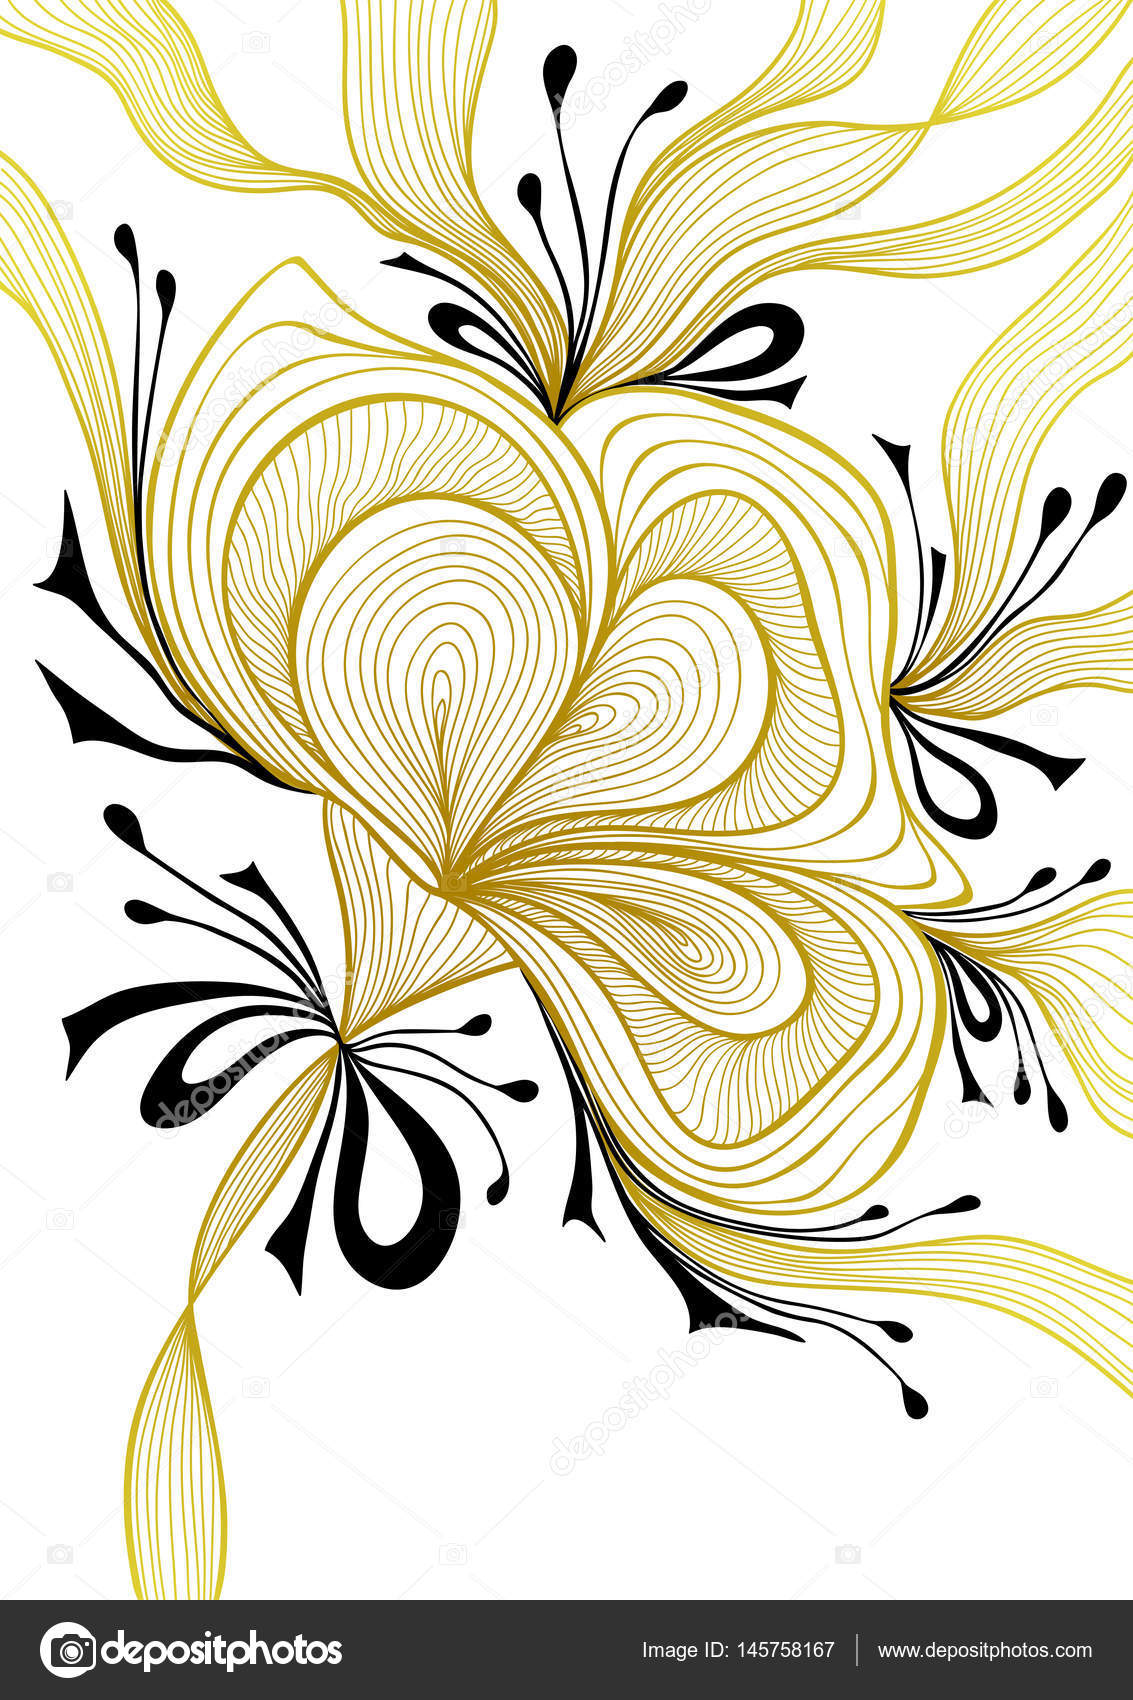 Beautiful Abstract Background Lace Flower Bows Gold Black Brown Beige White Wallpaper Decoration Package Perfumer Textile